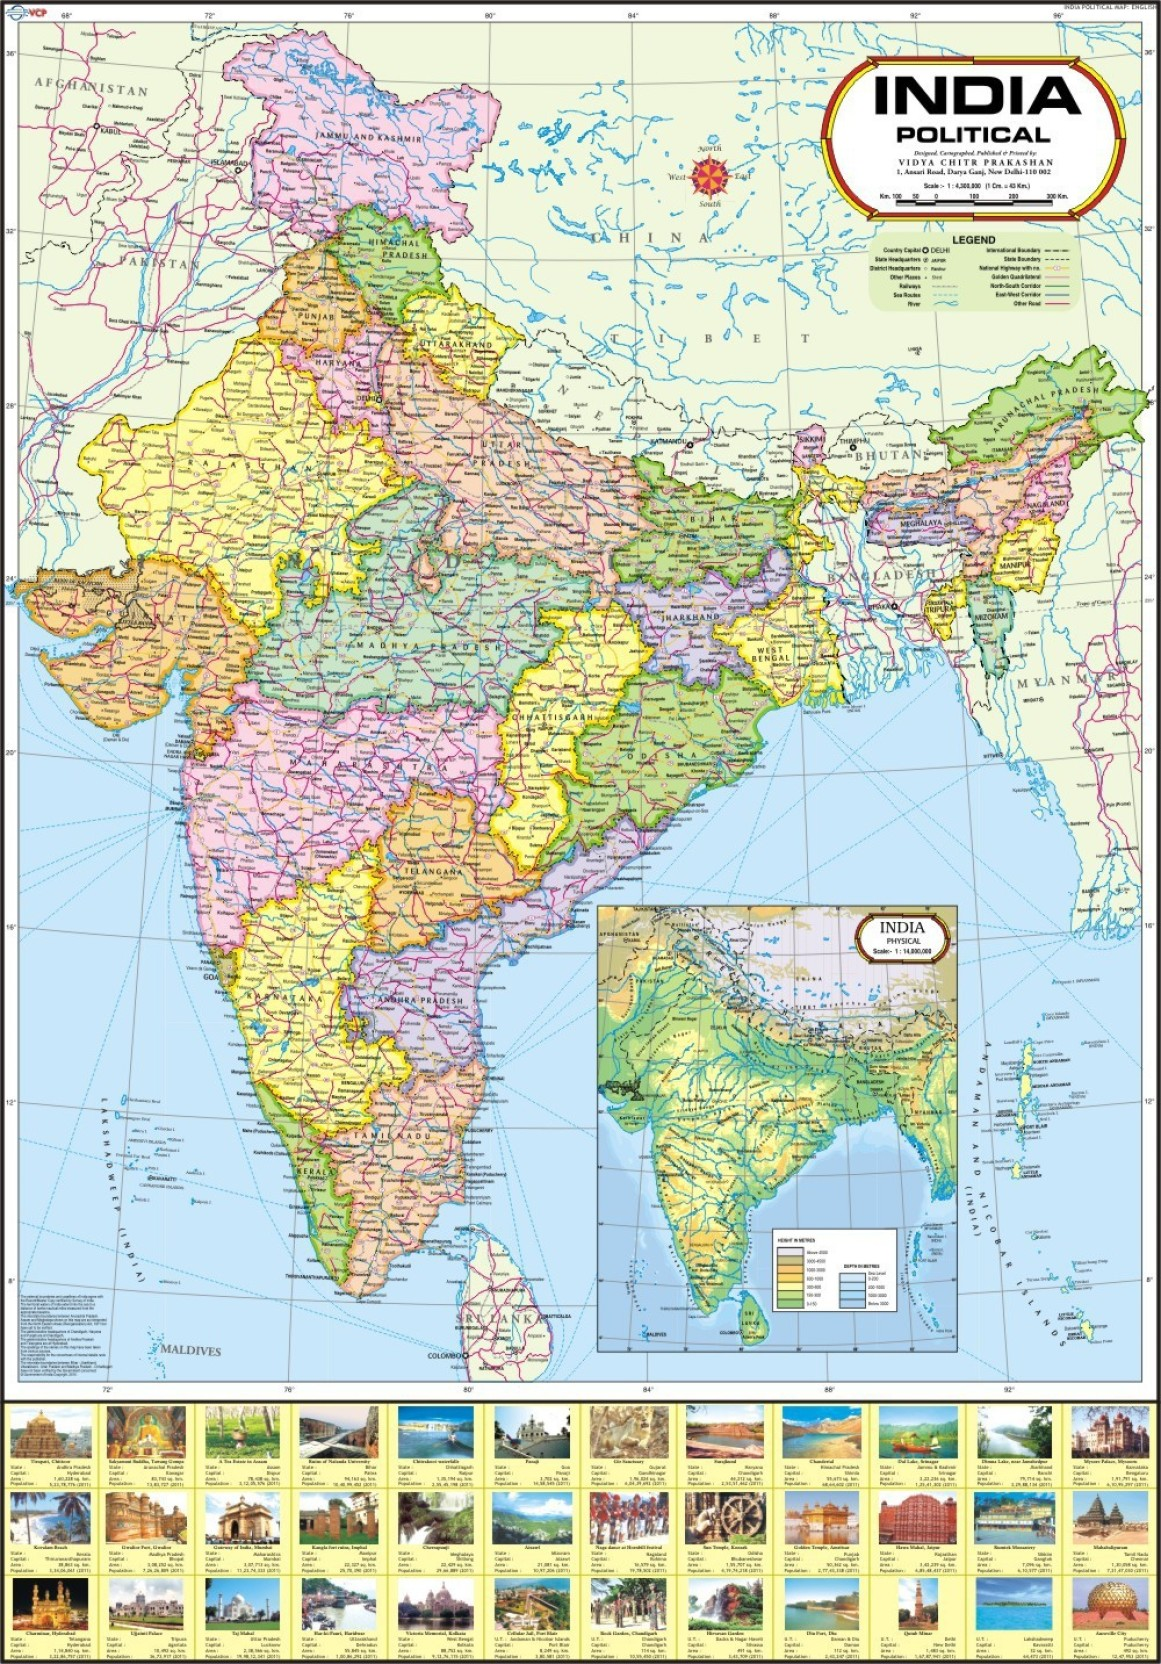 India Map : Political - Wall Chart Paper Print - Maps posters in ...